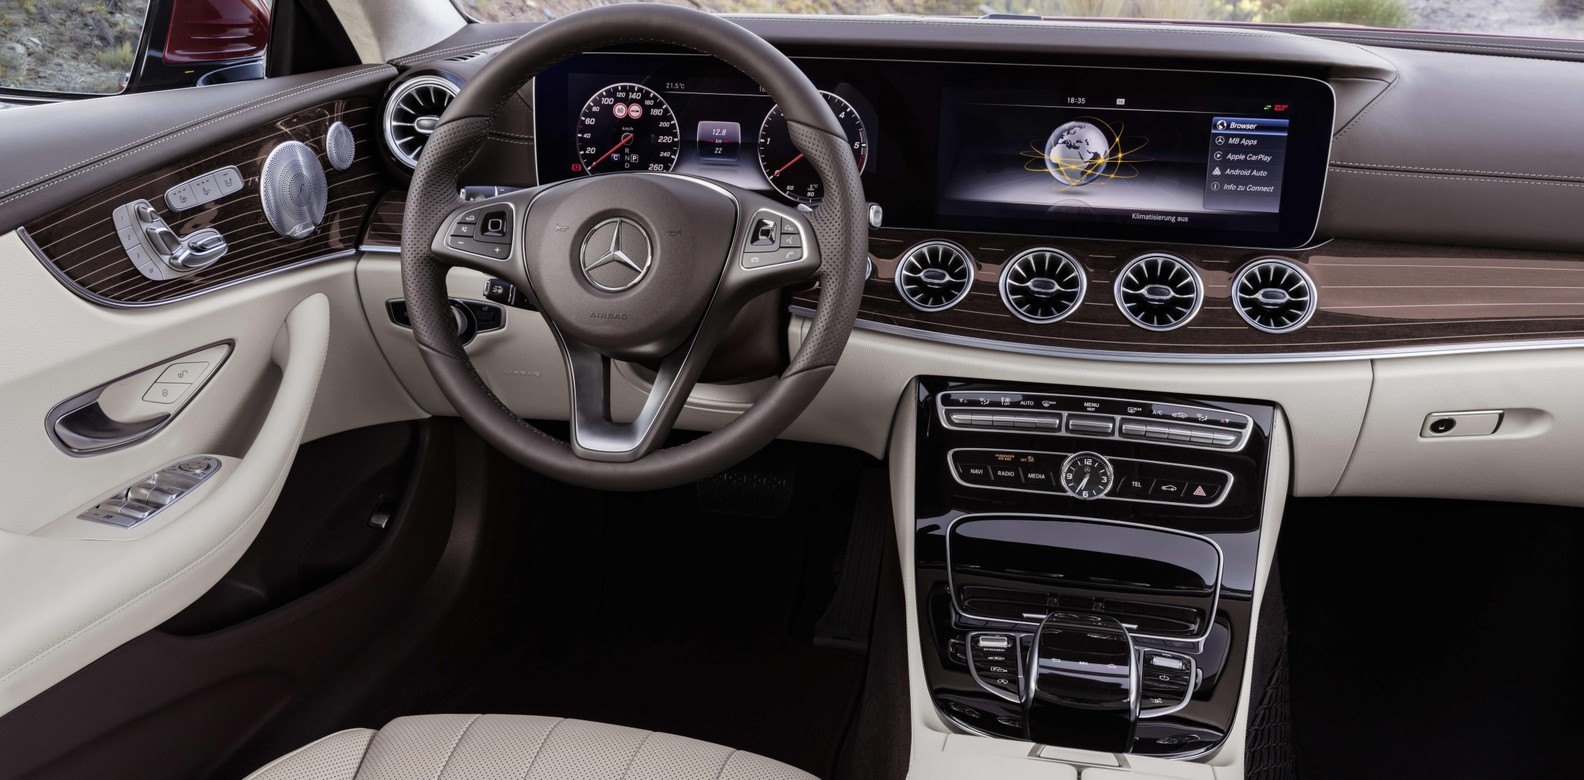 Mercedes-Benz E-Class: Locking and unlocking centrally